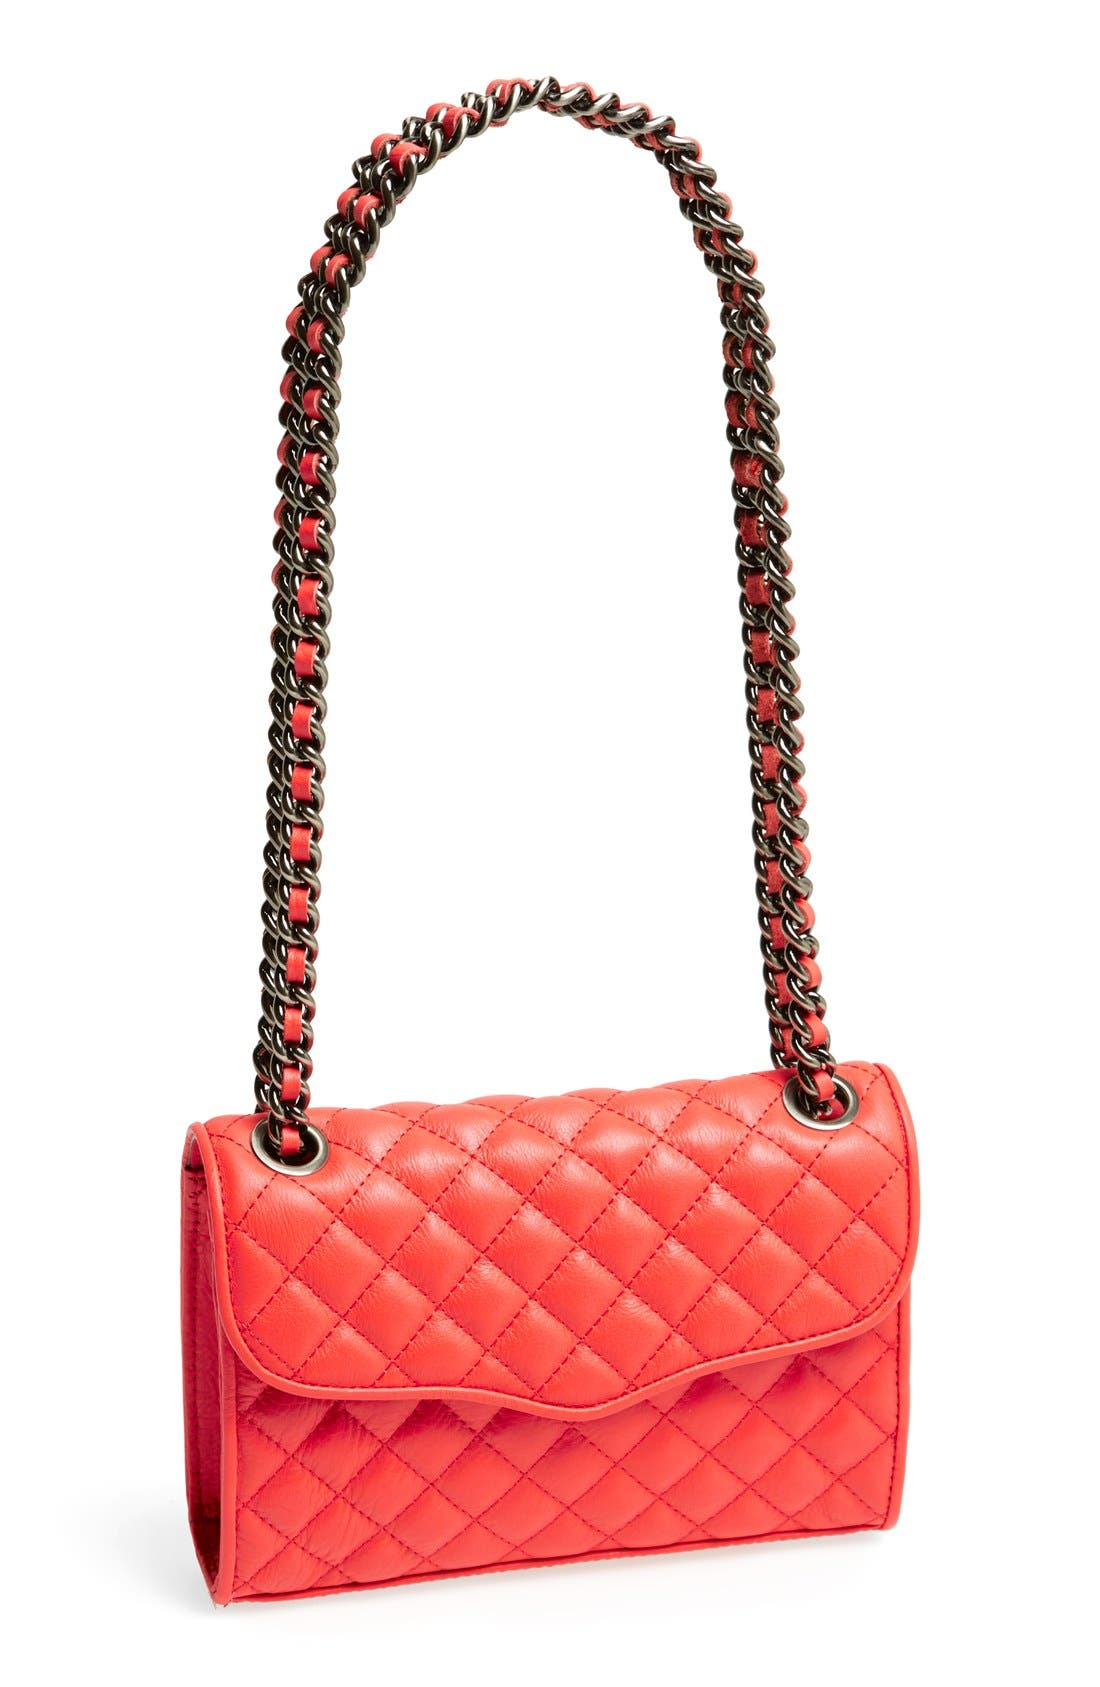 Alternate Image 1 Selected - Rebecca Minkoff 'Mini Affair' Convertible Crossbody Bag